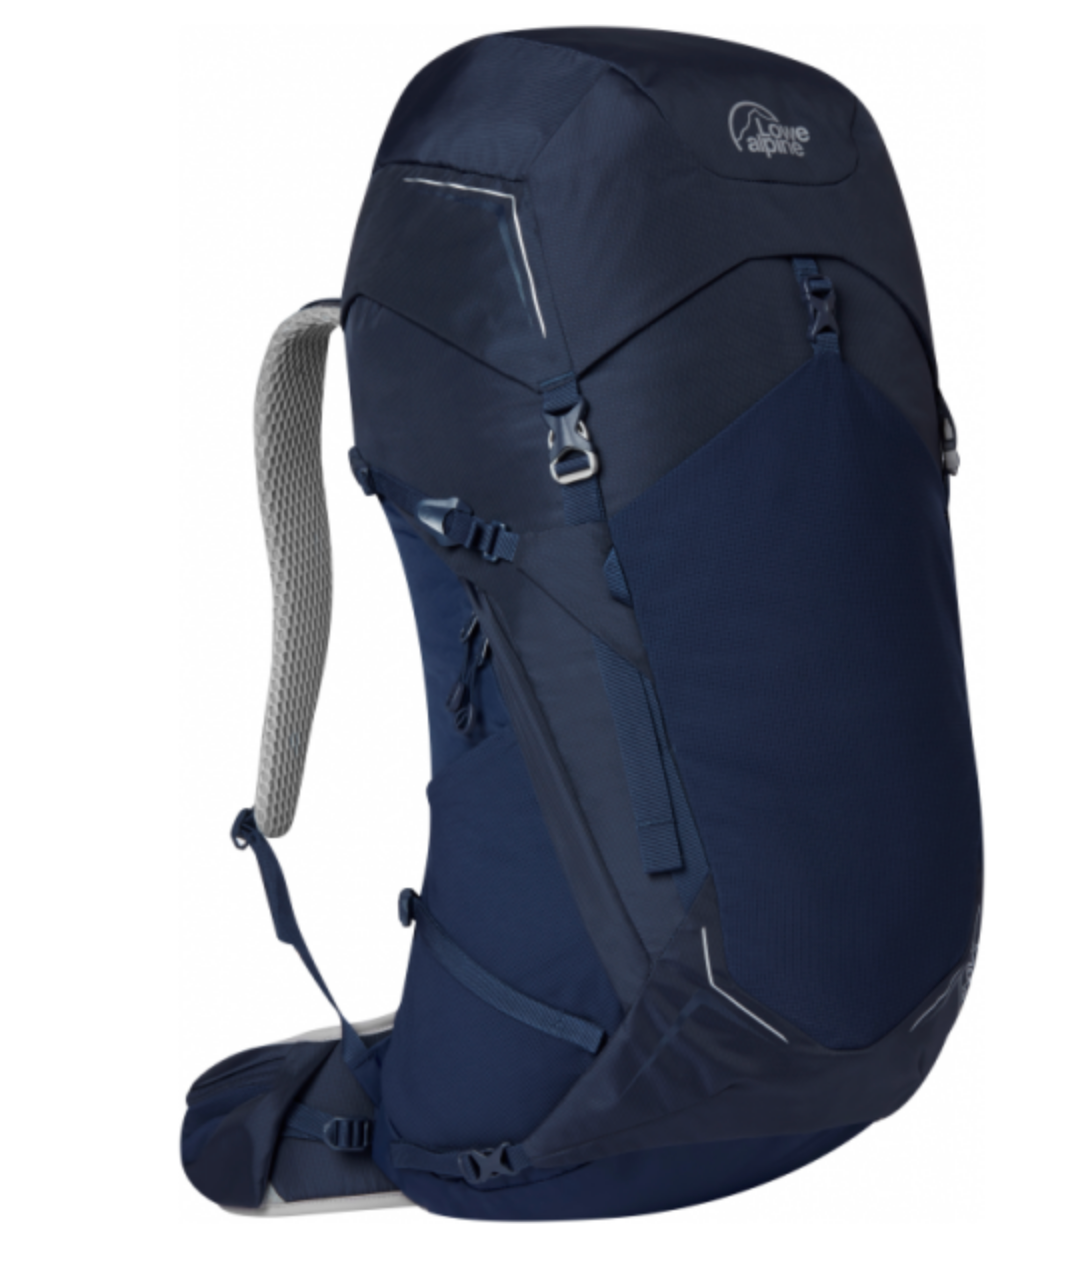 Lowe Alpine-AirZone Trek 35-45-Backpacking Pack-Navy-Gearaholic.com.sg